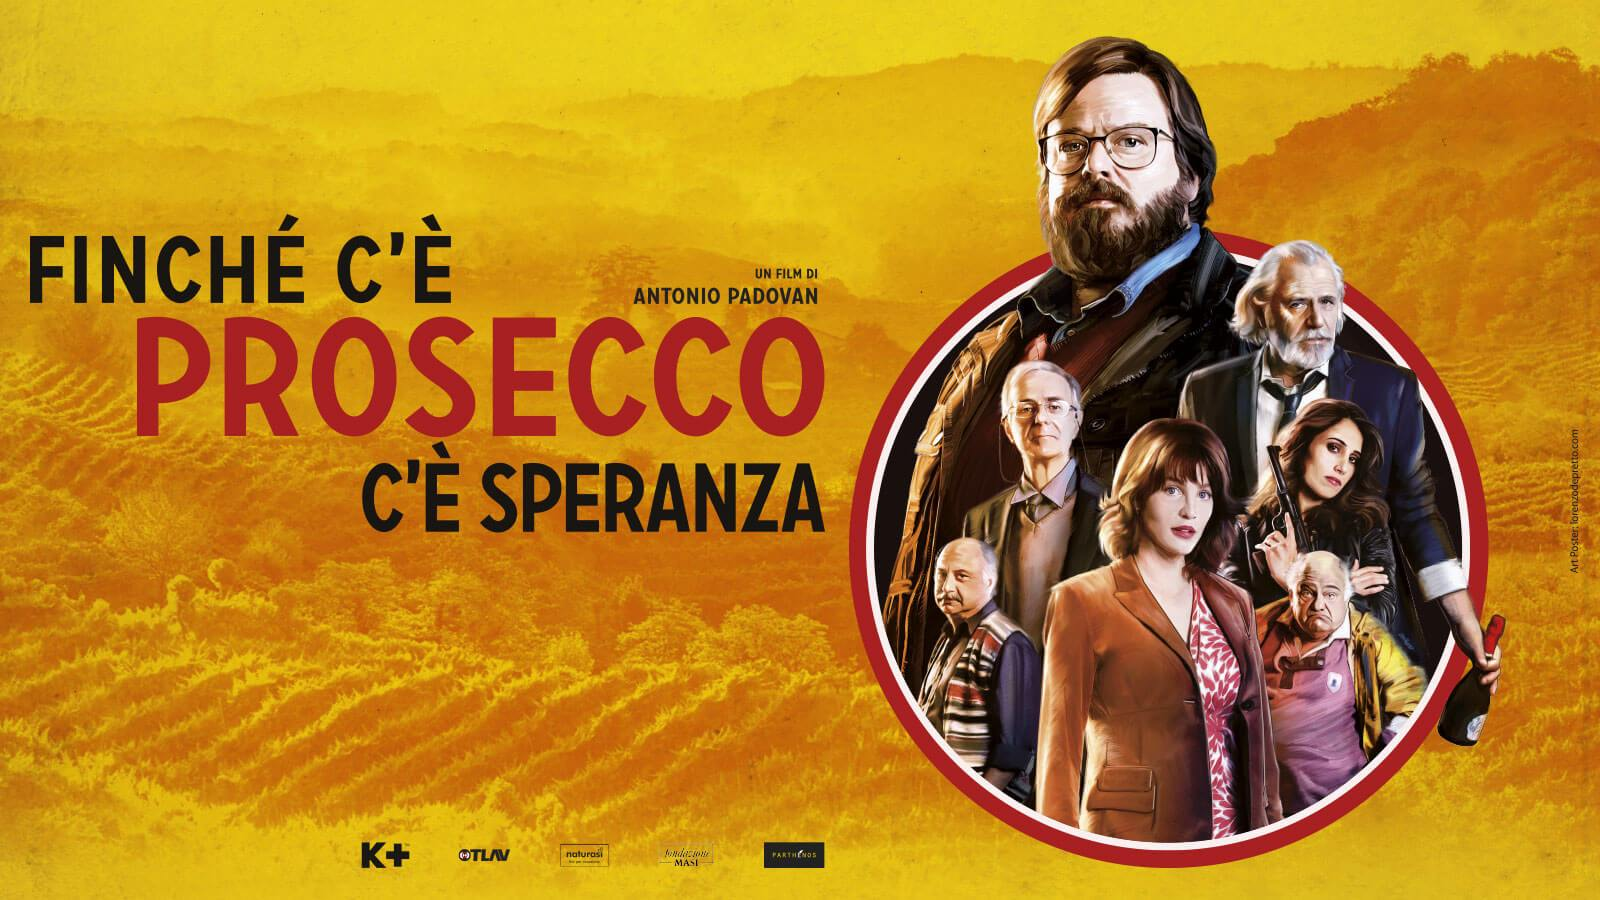 Week-end al Cinema - Finché c'è prosecco c'è speranza